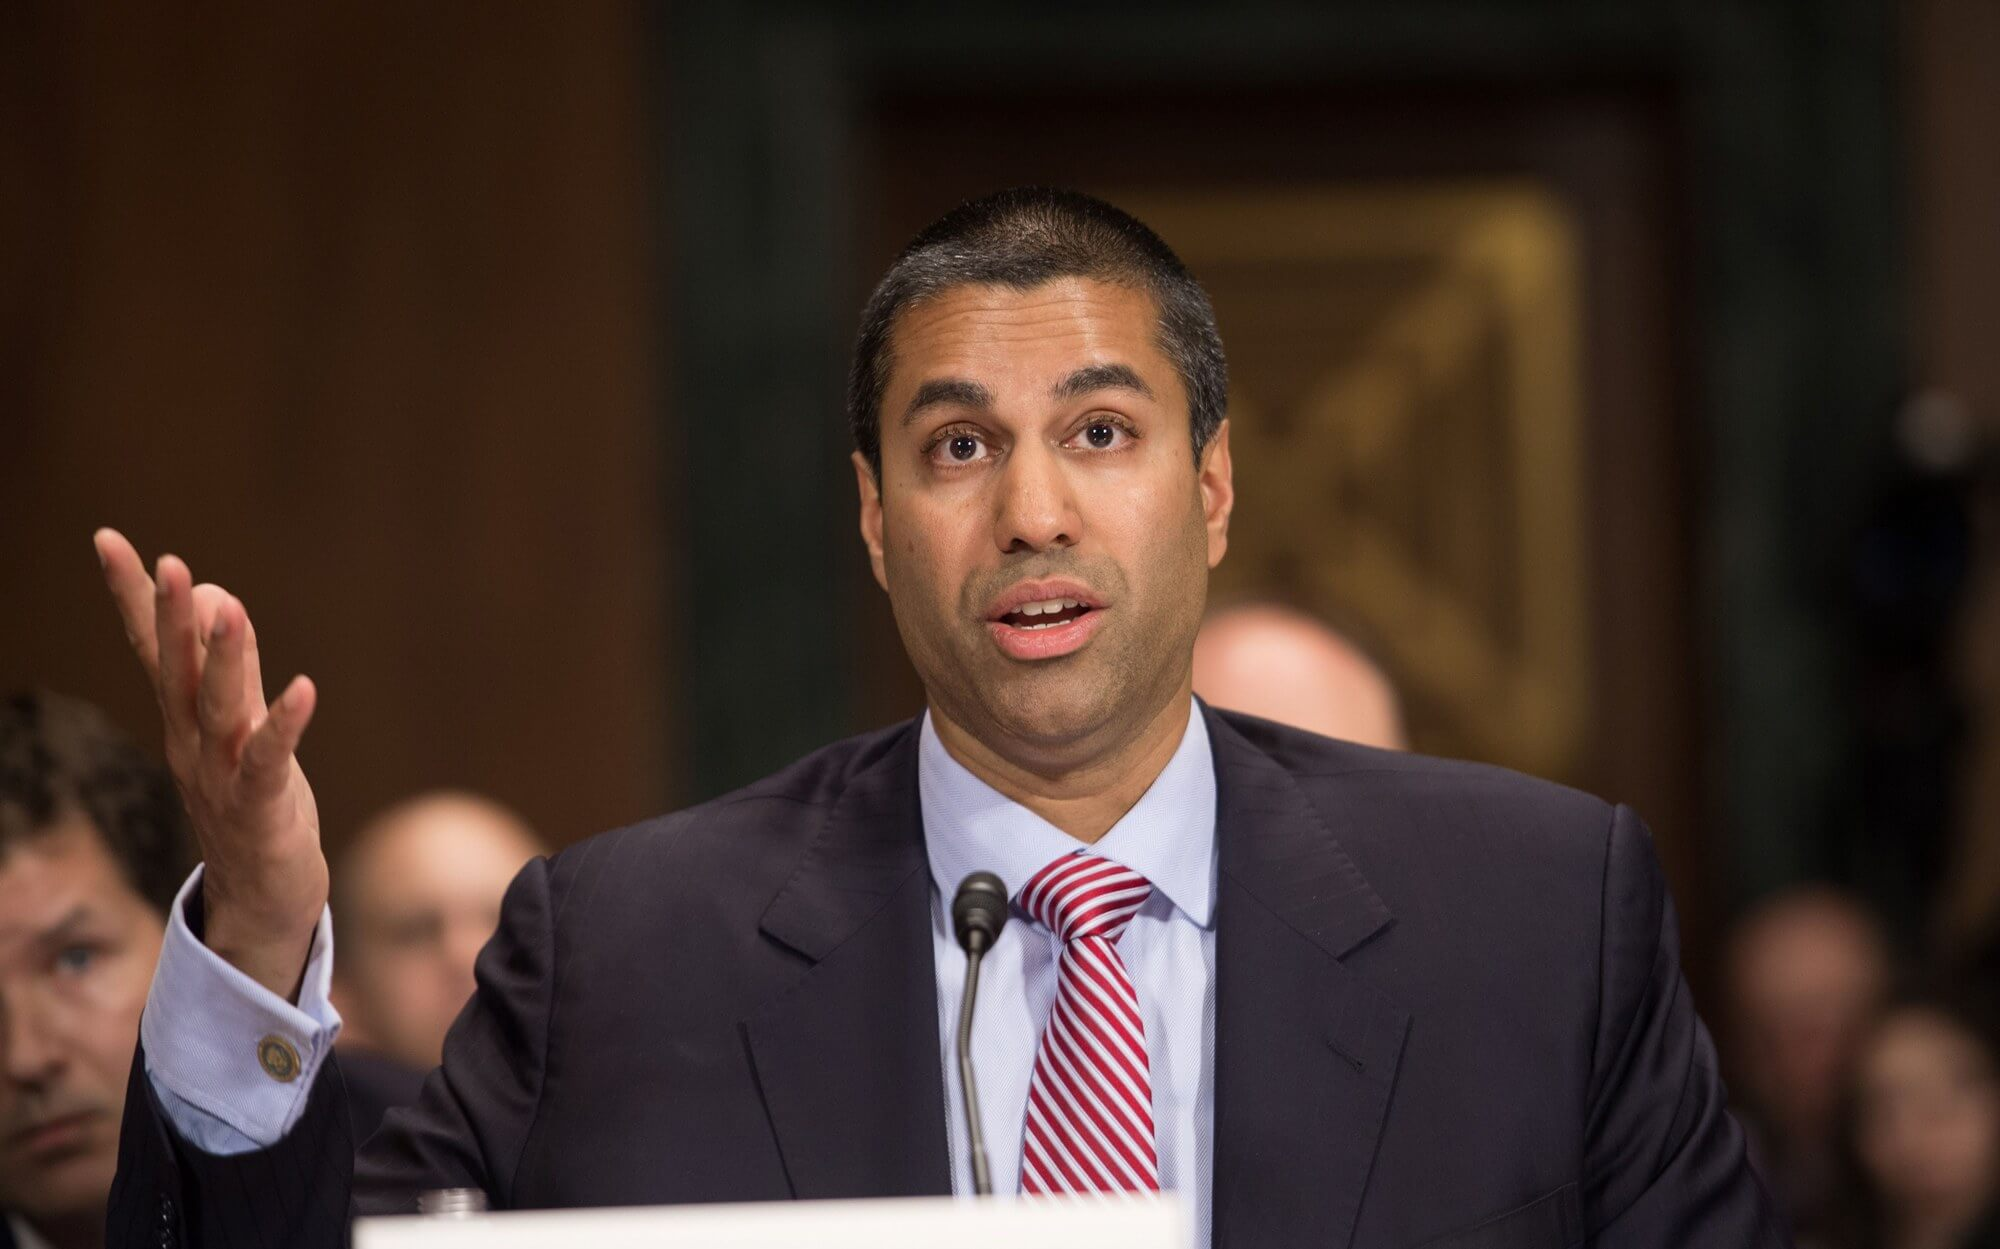 California man receives 18 month sentence for emailing death threats to Ajit Pai